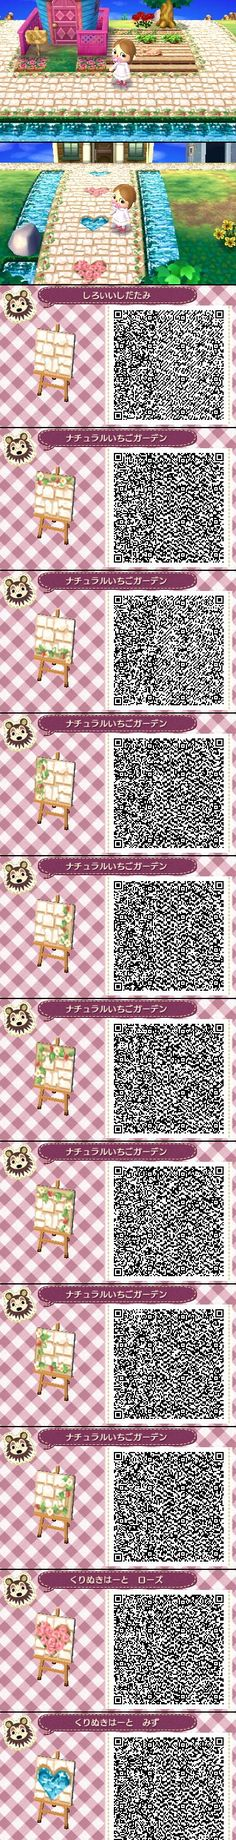 Animal Crossing New Leaf QR codes White stone (click through for source and full images) (Geek Stuff Videos)